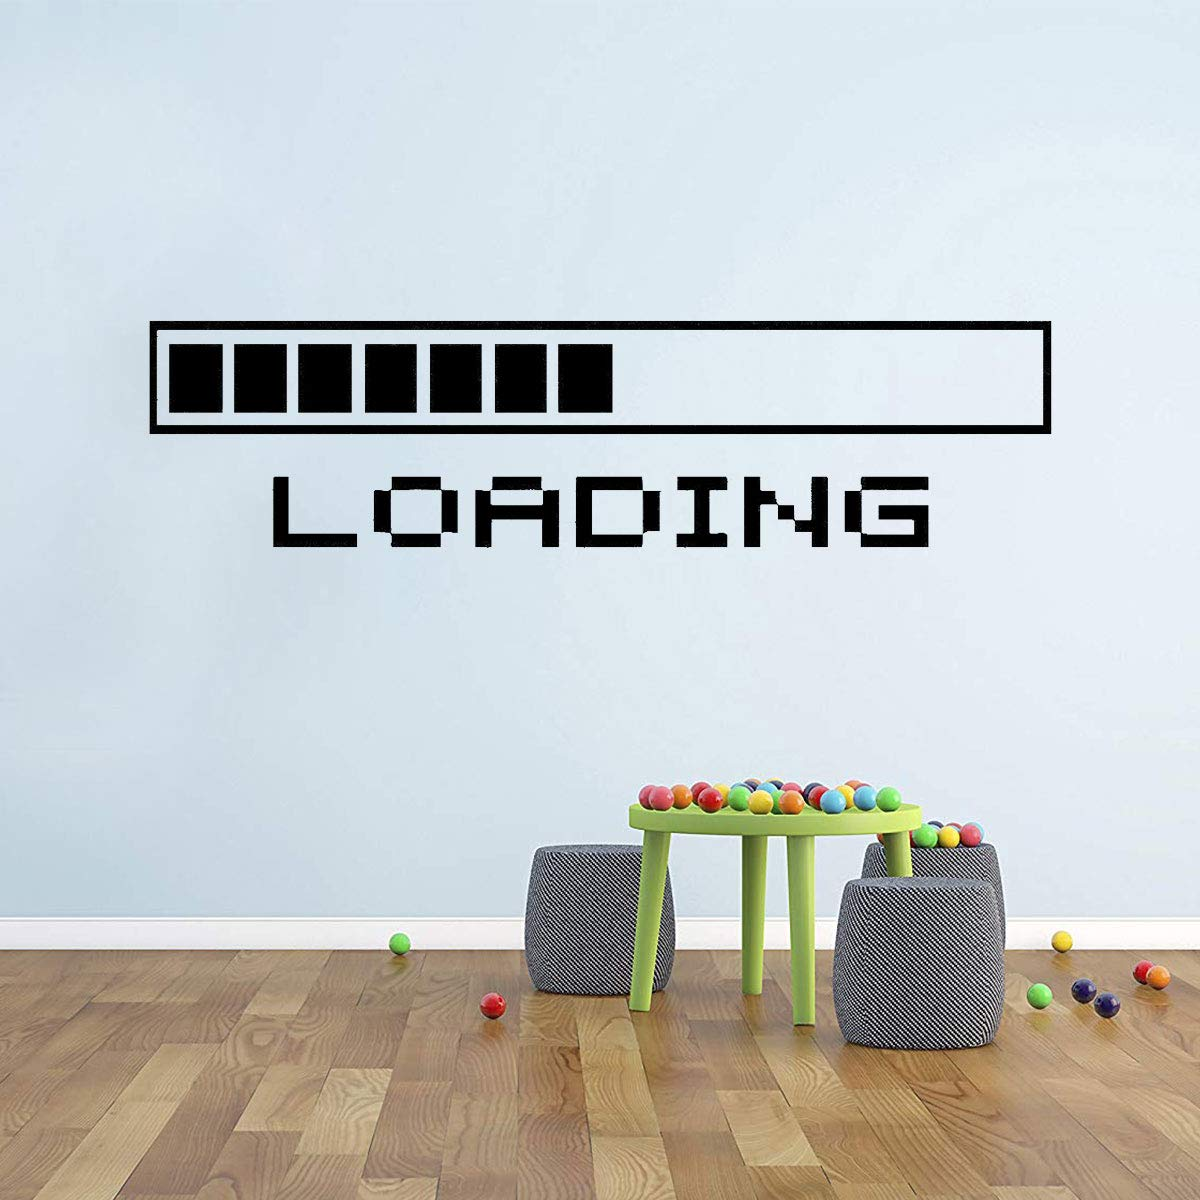 PICTURE IT ON CANVAS Loading a Video Game Wall Poster Decal Cool Gamer Stuff Computer Wall Stickers Murals Home Decor Accents by PICTURE IT ON CANVAS (Image #4)